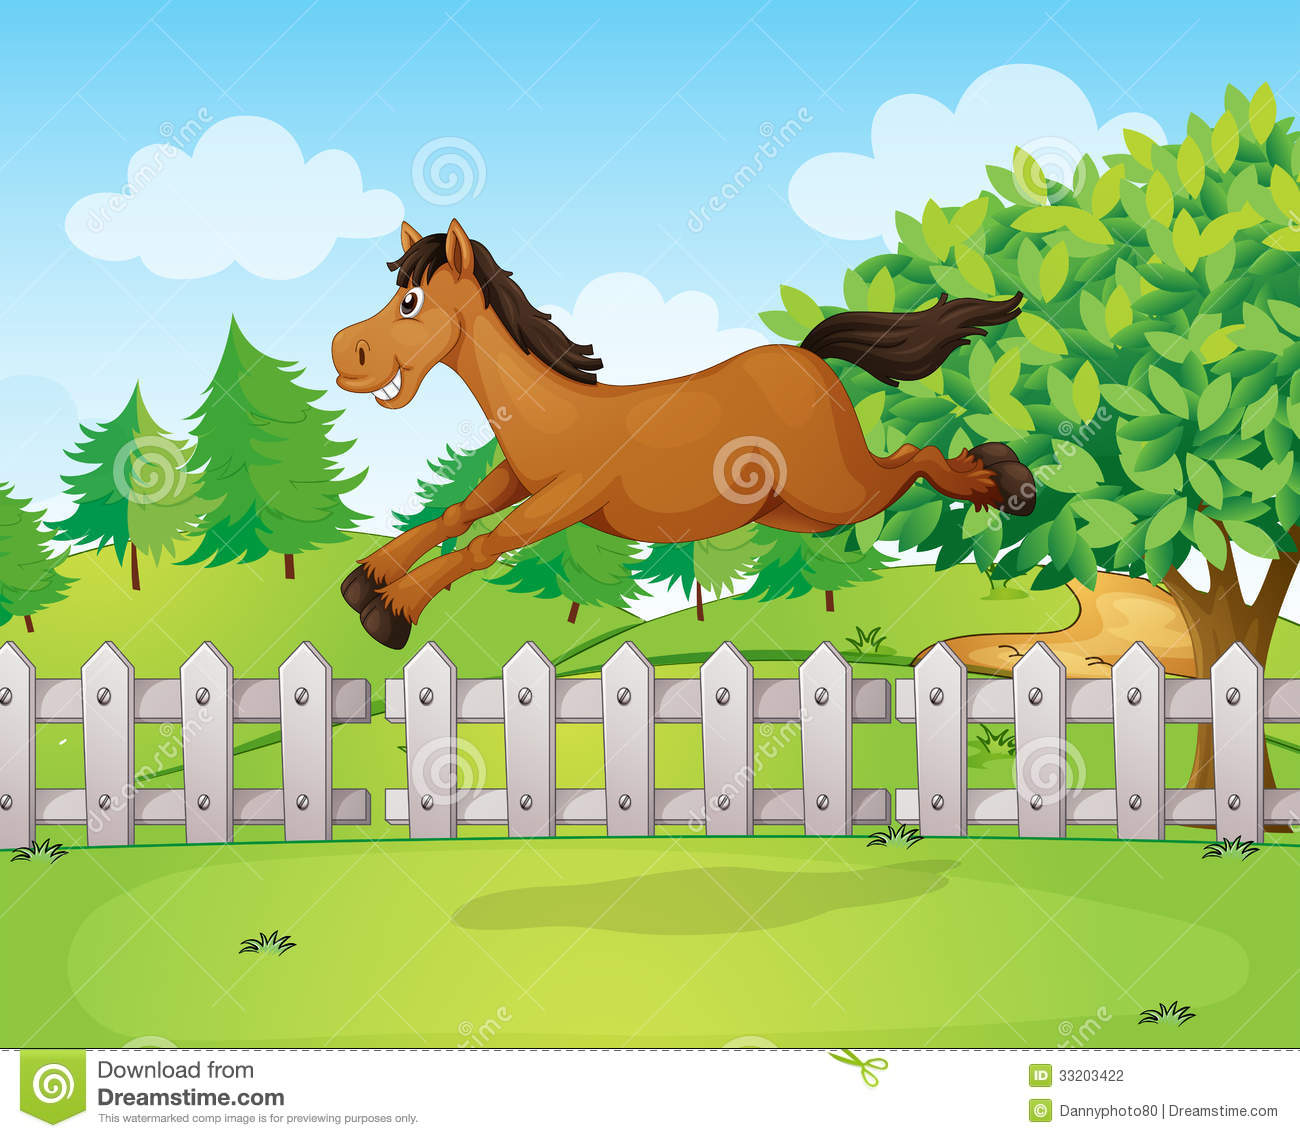 how to draw a horse jumping over a jump